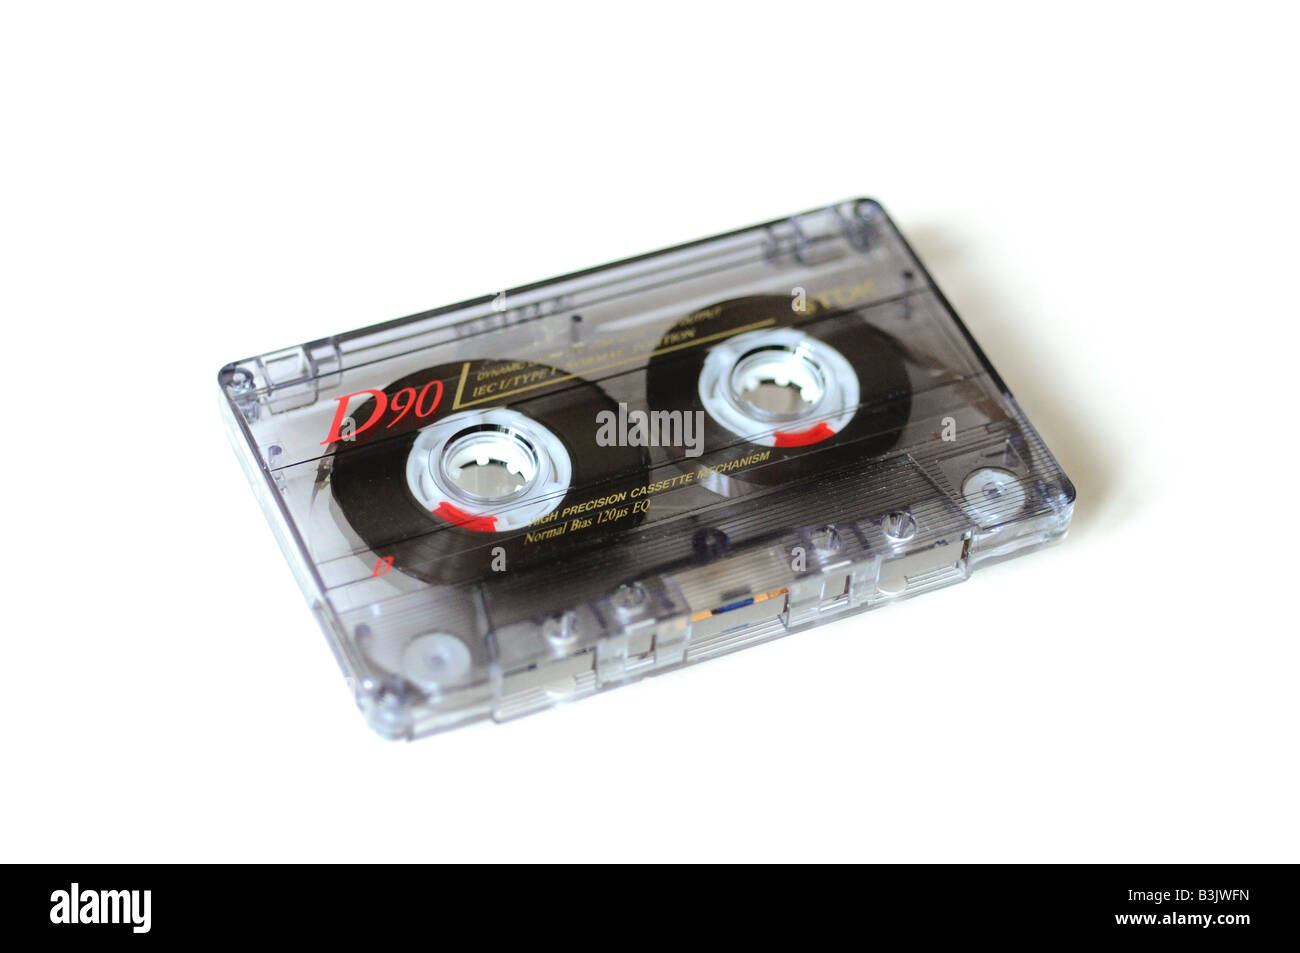 Tape cassette on a white background - Stock Image